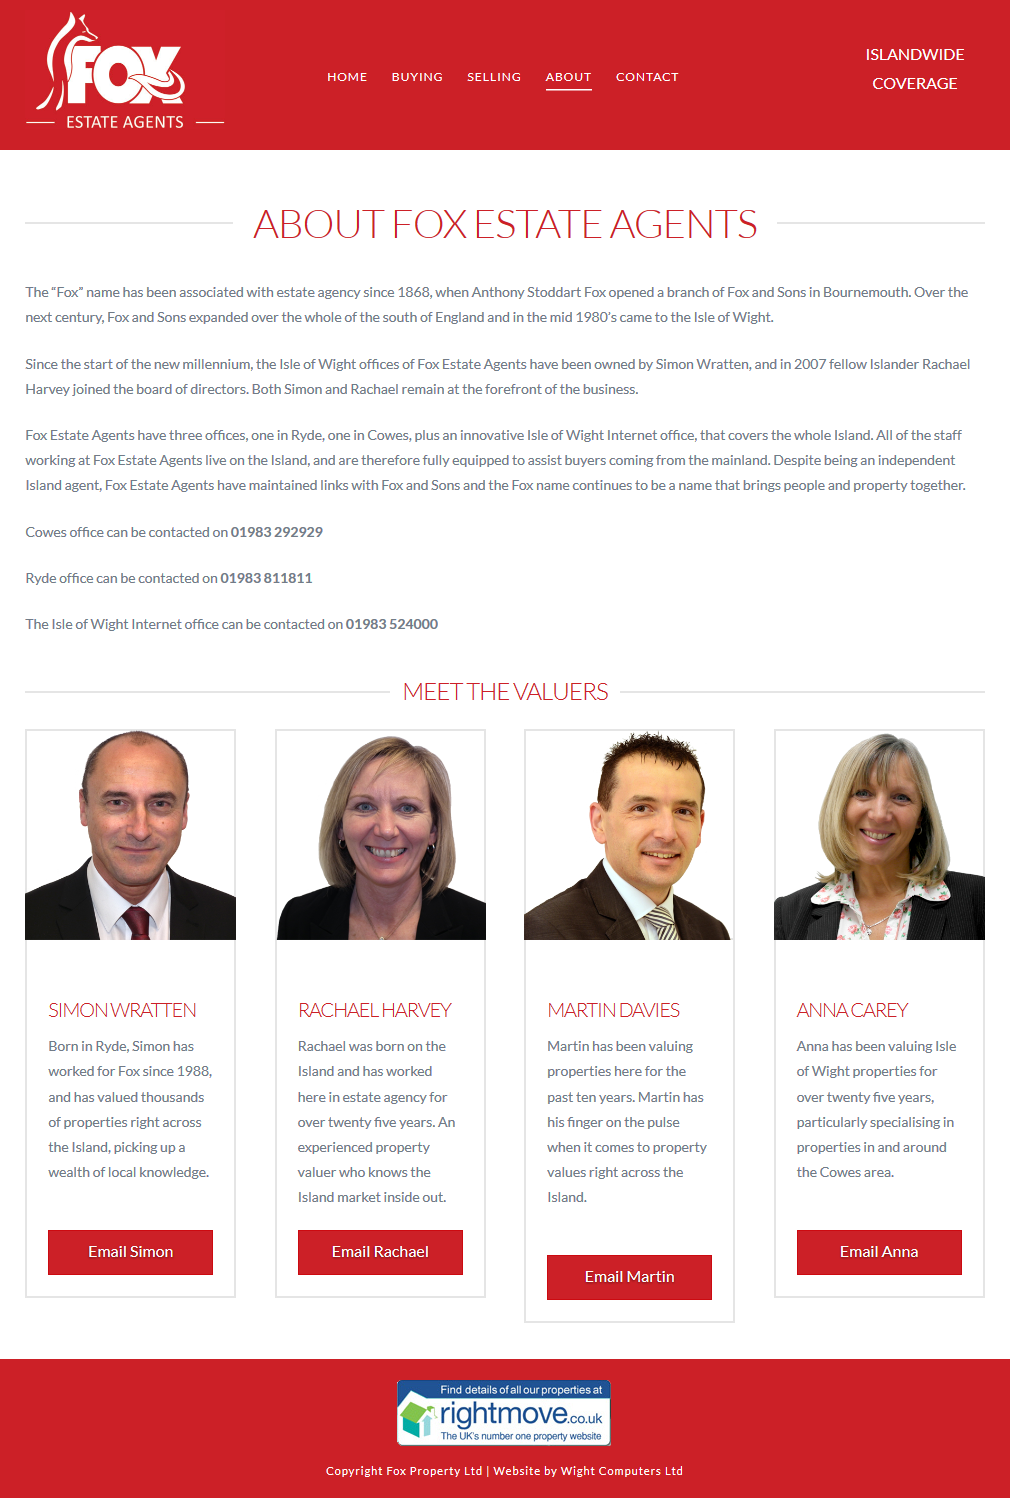 Fox Estate Agents – About the Isle of Wight Estate Agents 2015-11-27 11-12-36